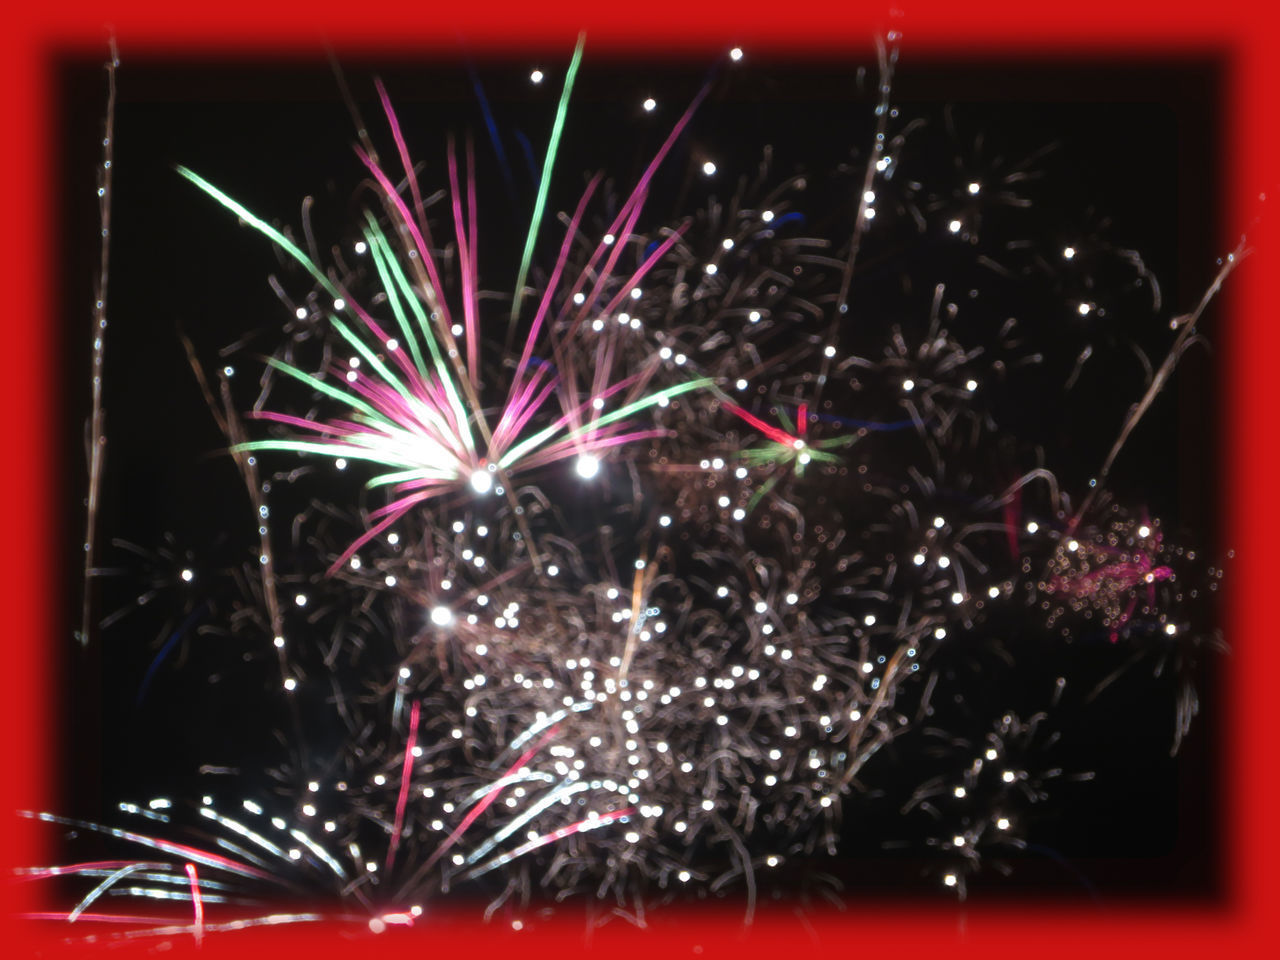 celebration, illuminated, night, event, firework, arts culture and entertainment, firework display, motion, long exposure, glowing, multi colored, no people, exploding, firework - man made object, light, blurred motion, sparks, nature, dark, outdoors, sparkler